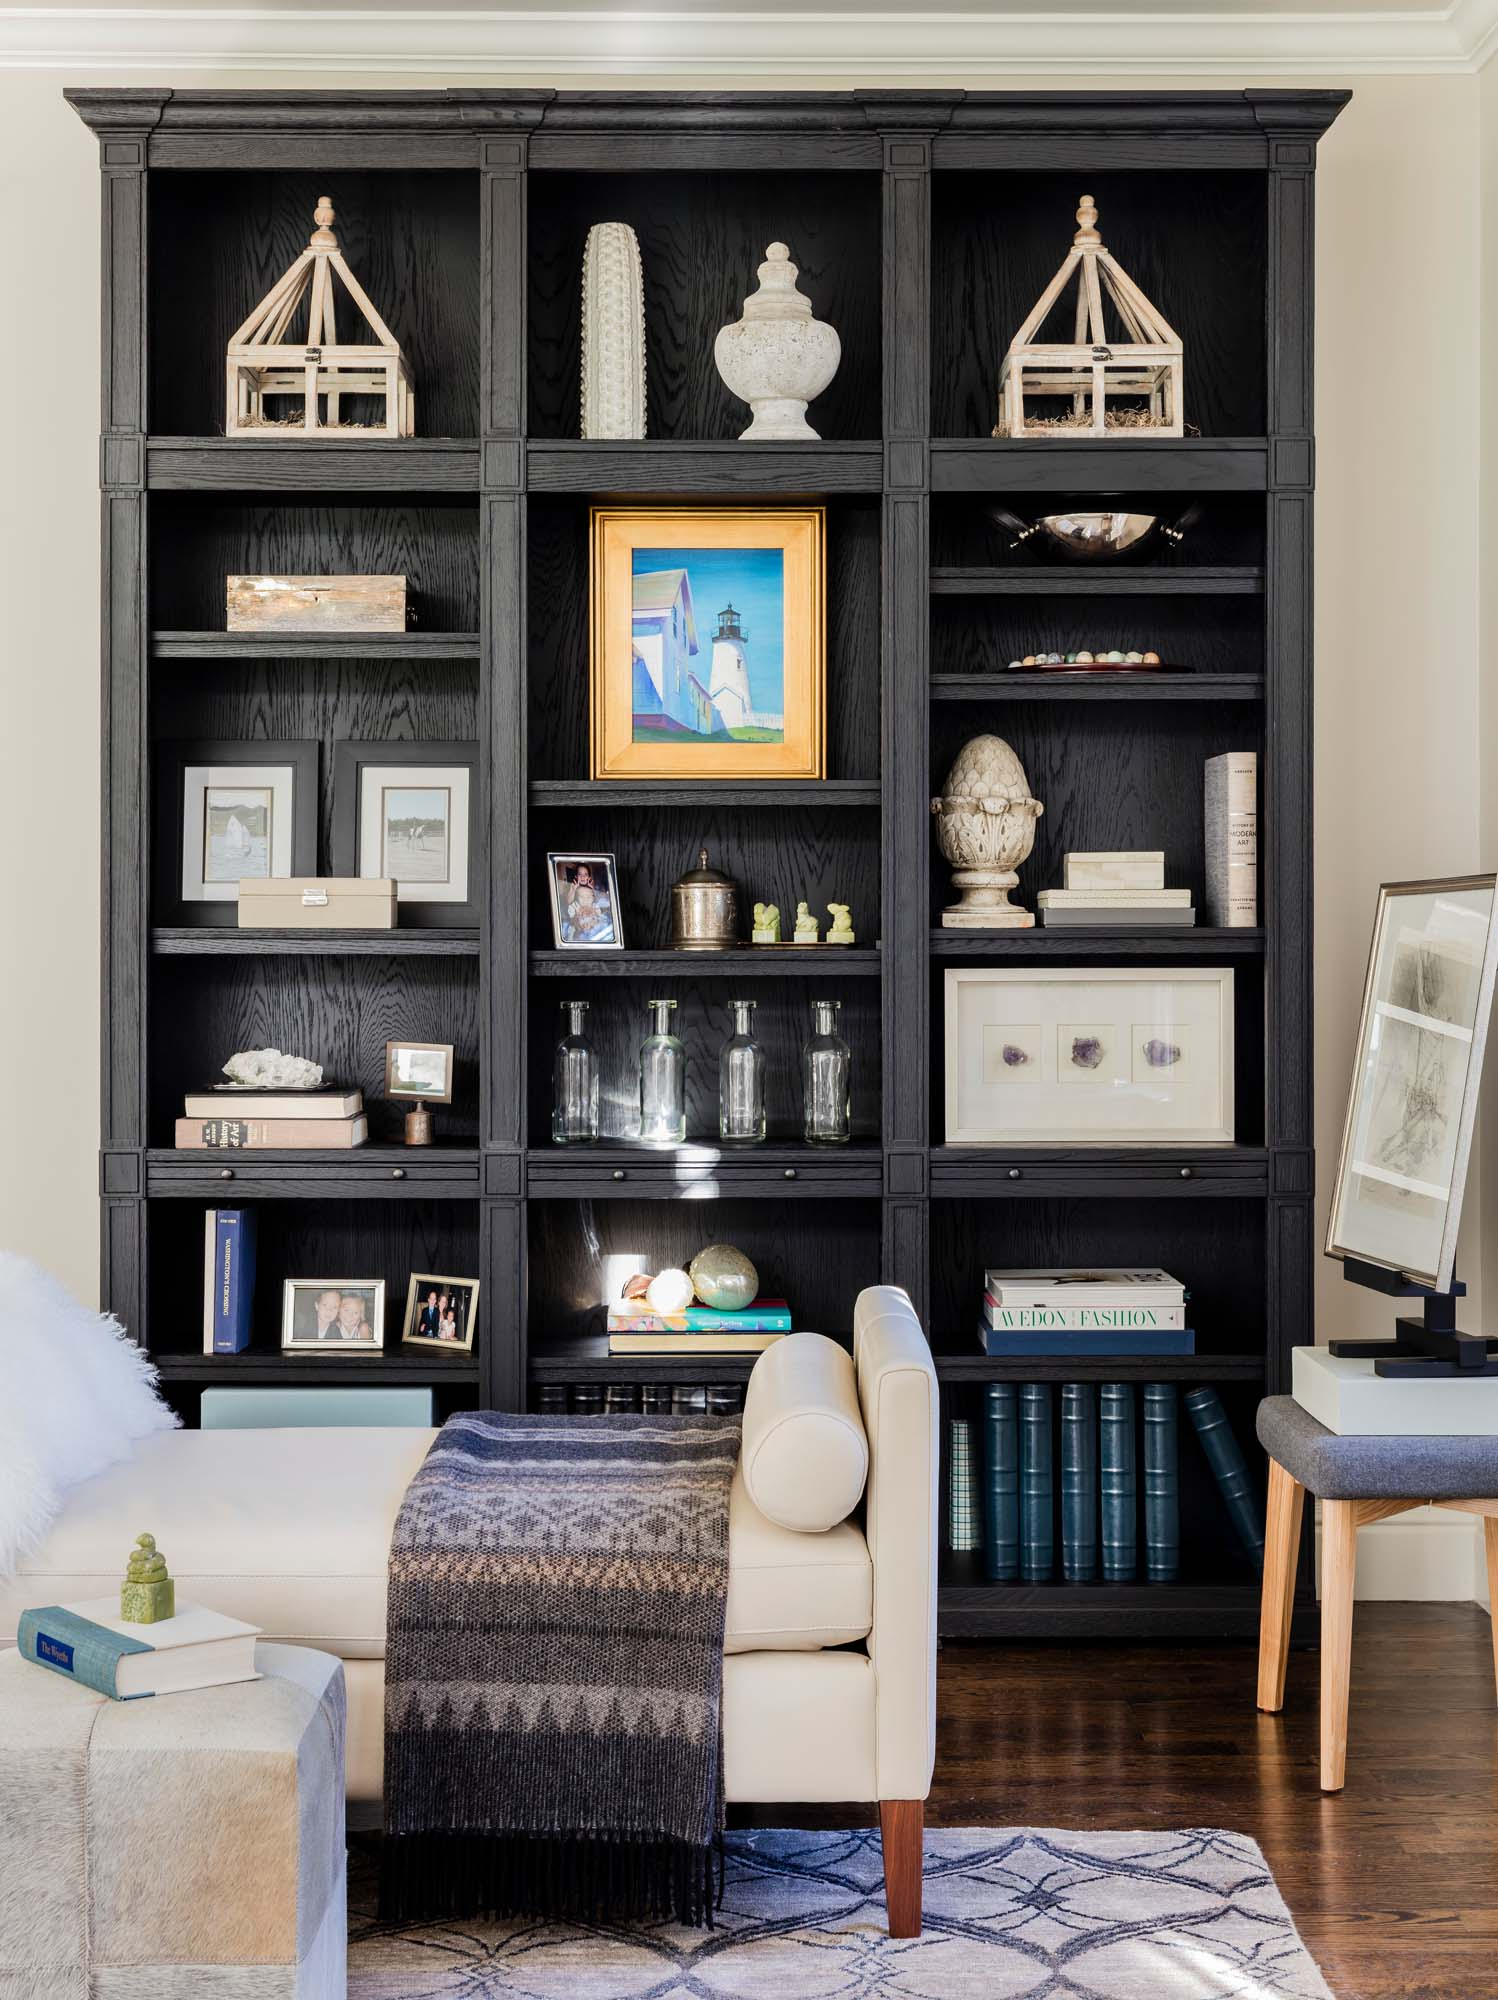 House interior with wooden shelves, hardwood floor, and chair, day bed, daybed, white leather, rh, restoration hardware black oak, black oak, benjamin moore, winds breath